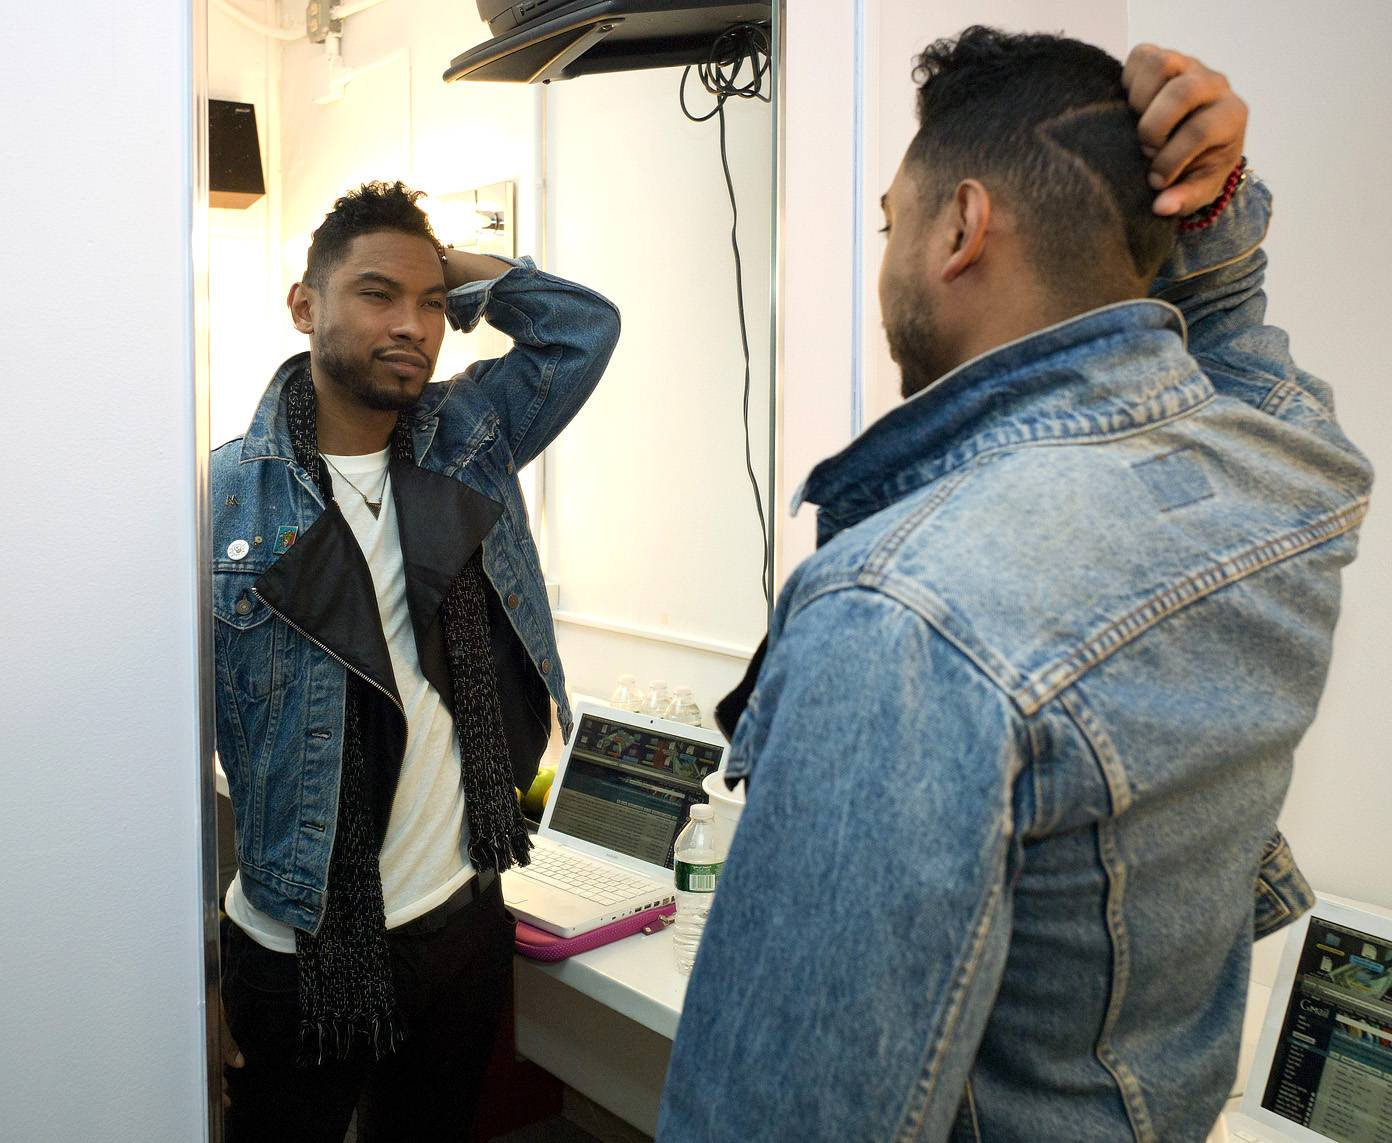 One Long Part For Cut Master Style - Miguel checks out the part by Cut Master Style backstage at BET Studios. (Photo: John Ricard / BET)